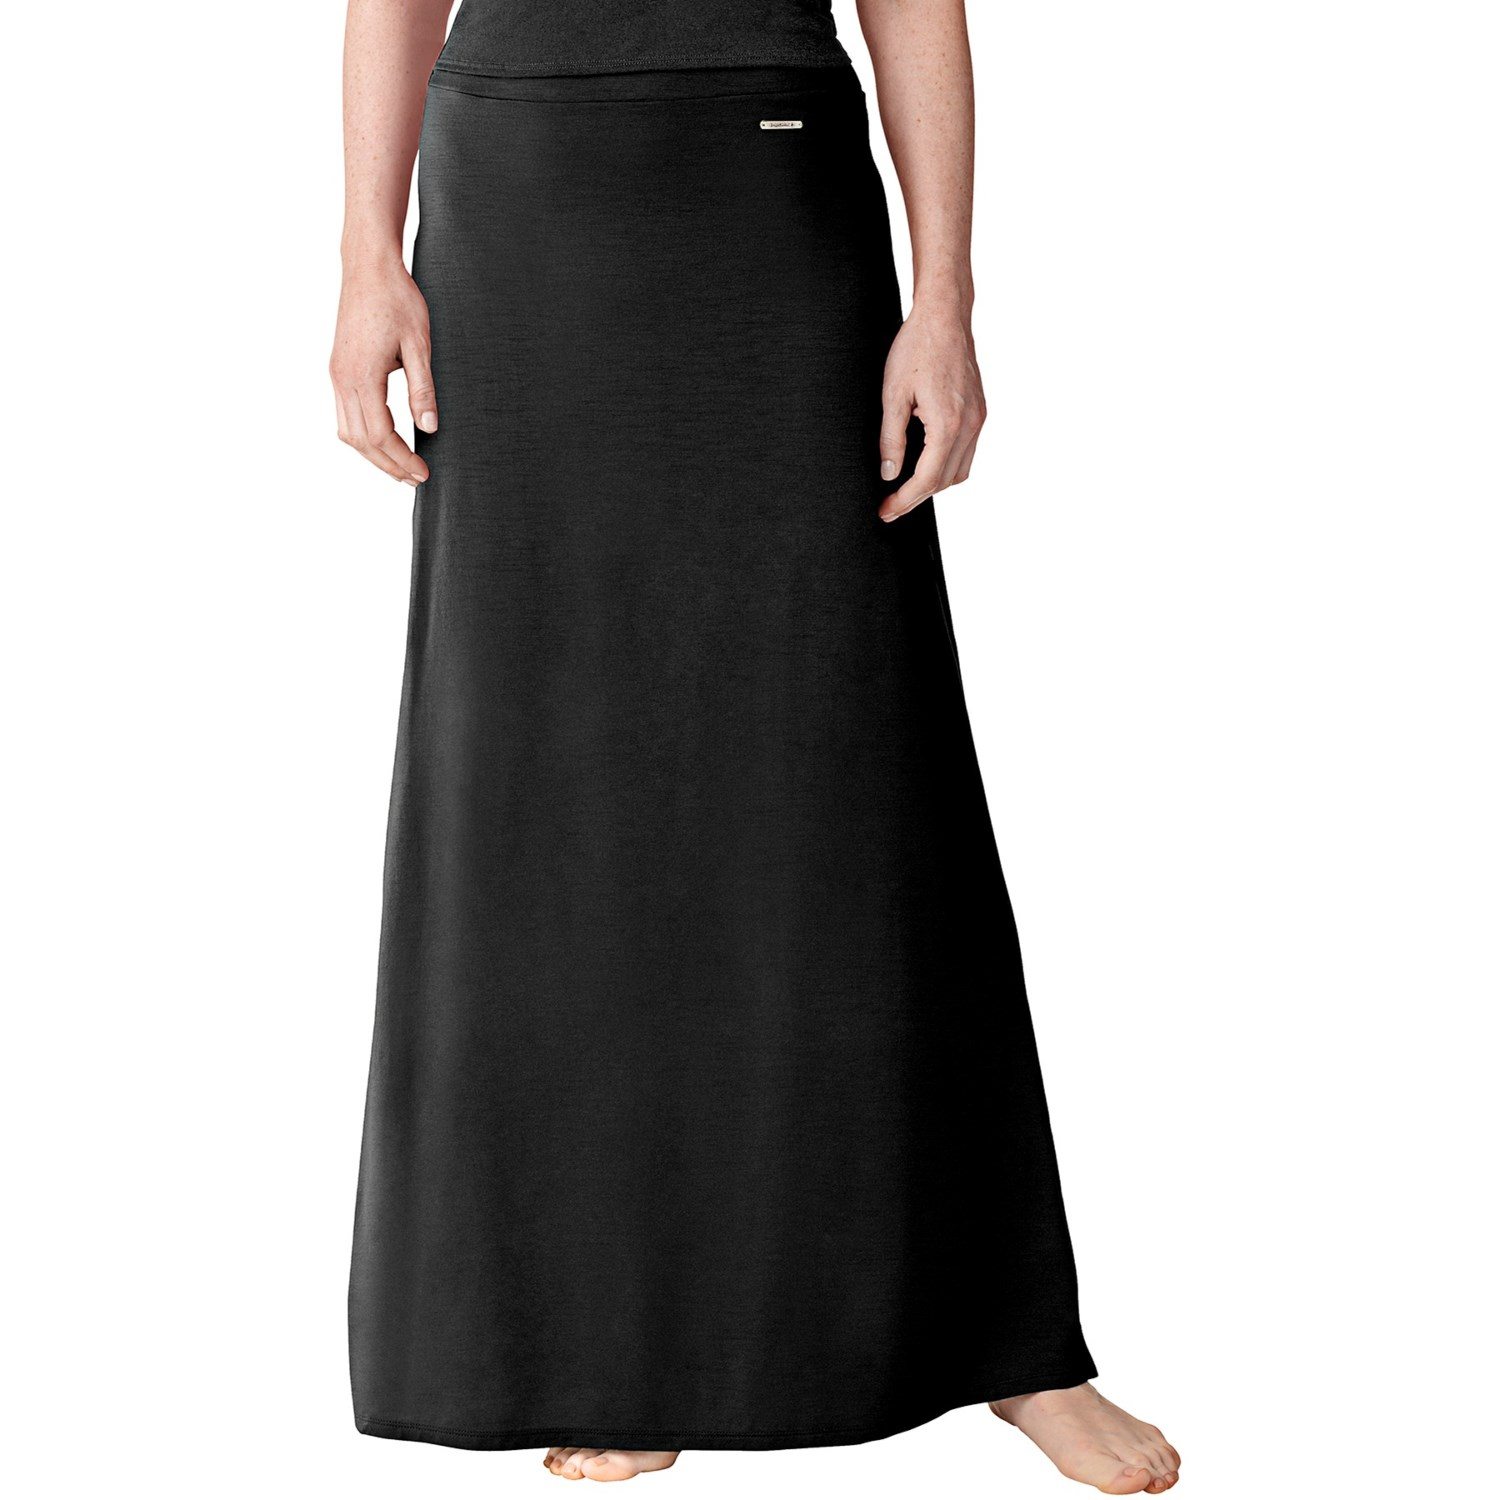 smartwool maxi skirt merino wool for